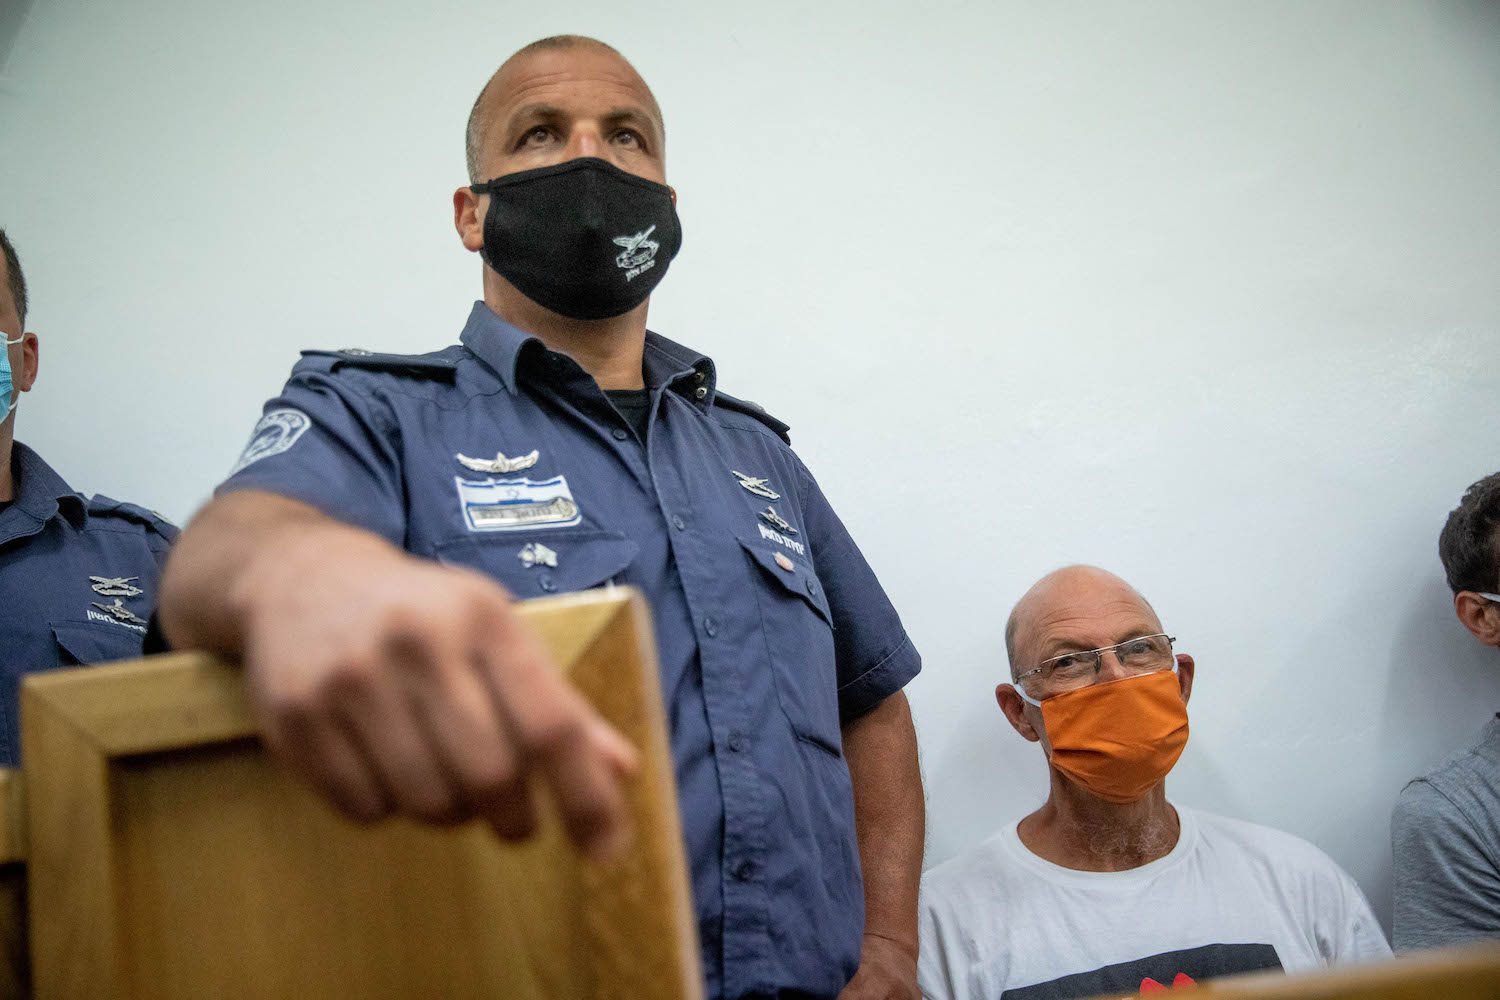 vAnti-Netanyahu activist Amir Haskel seen during a court hearing in the Jerusalem Magistrate's Court after being arrested during a protest the prime minister, June 27, 2020, Jerusalem. (Yonatan Sindel/Flash90)